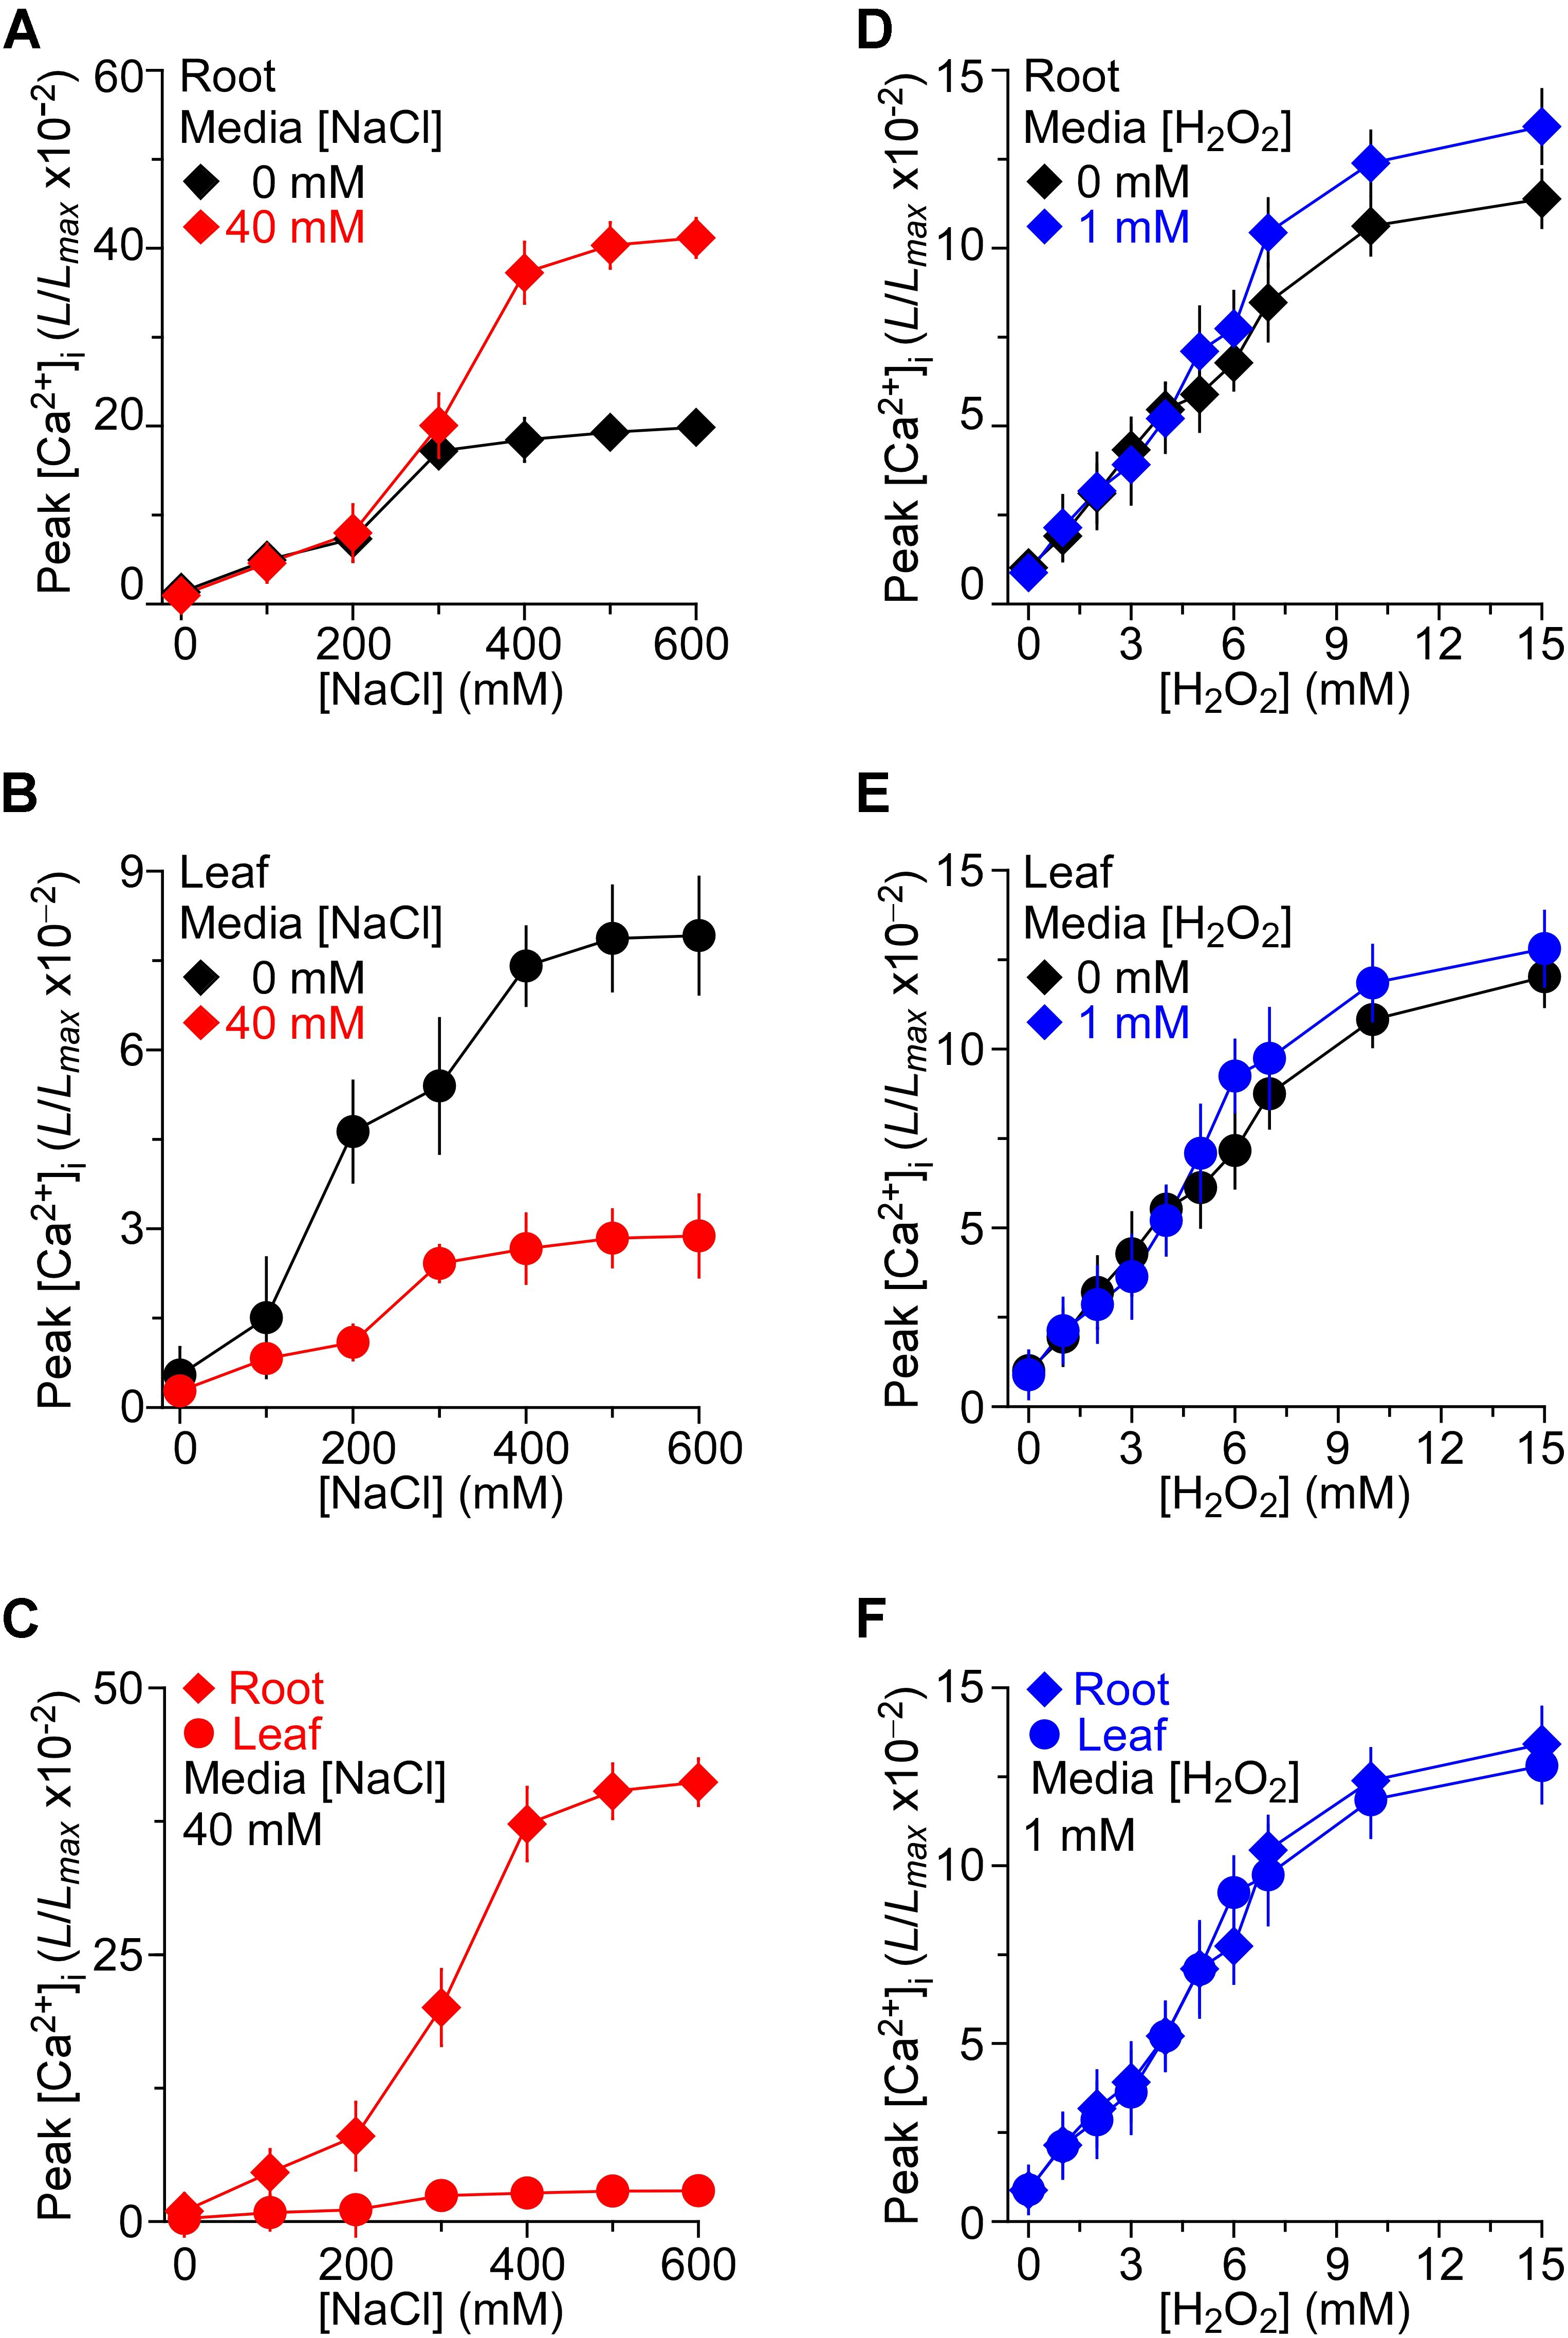 Frontiers | Both NaCl and H2O2 Long-Term Stresses Affect